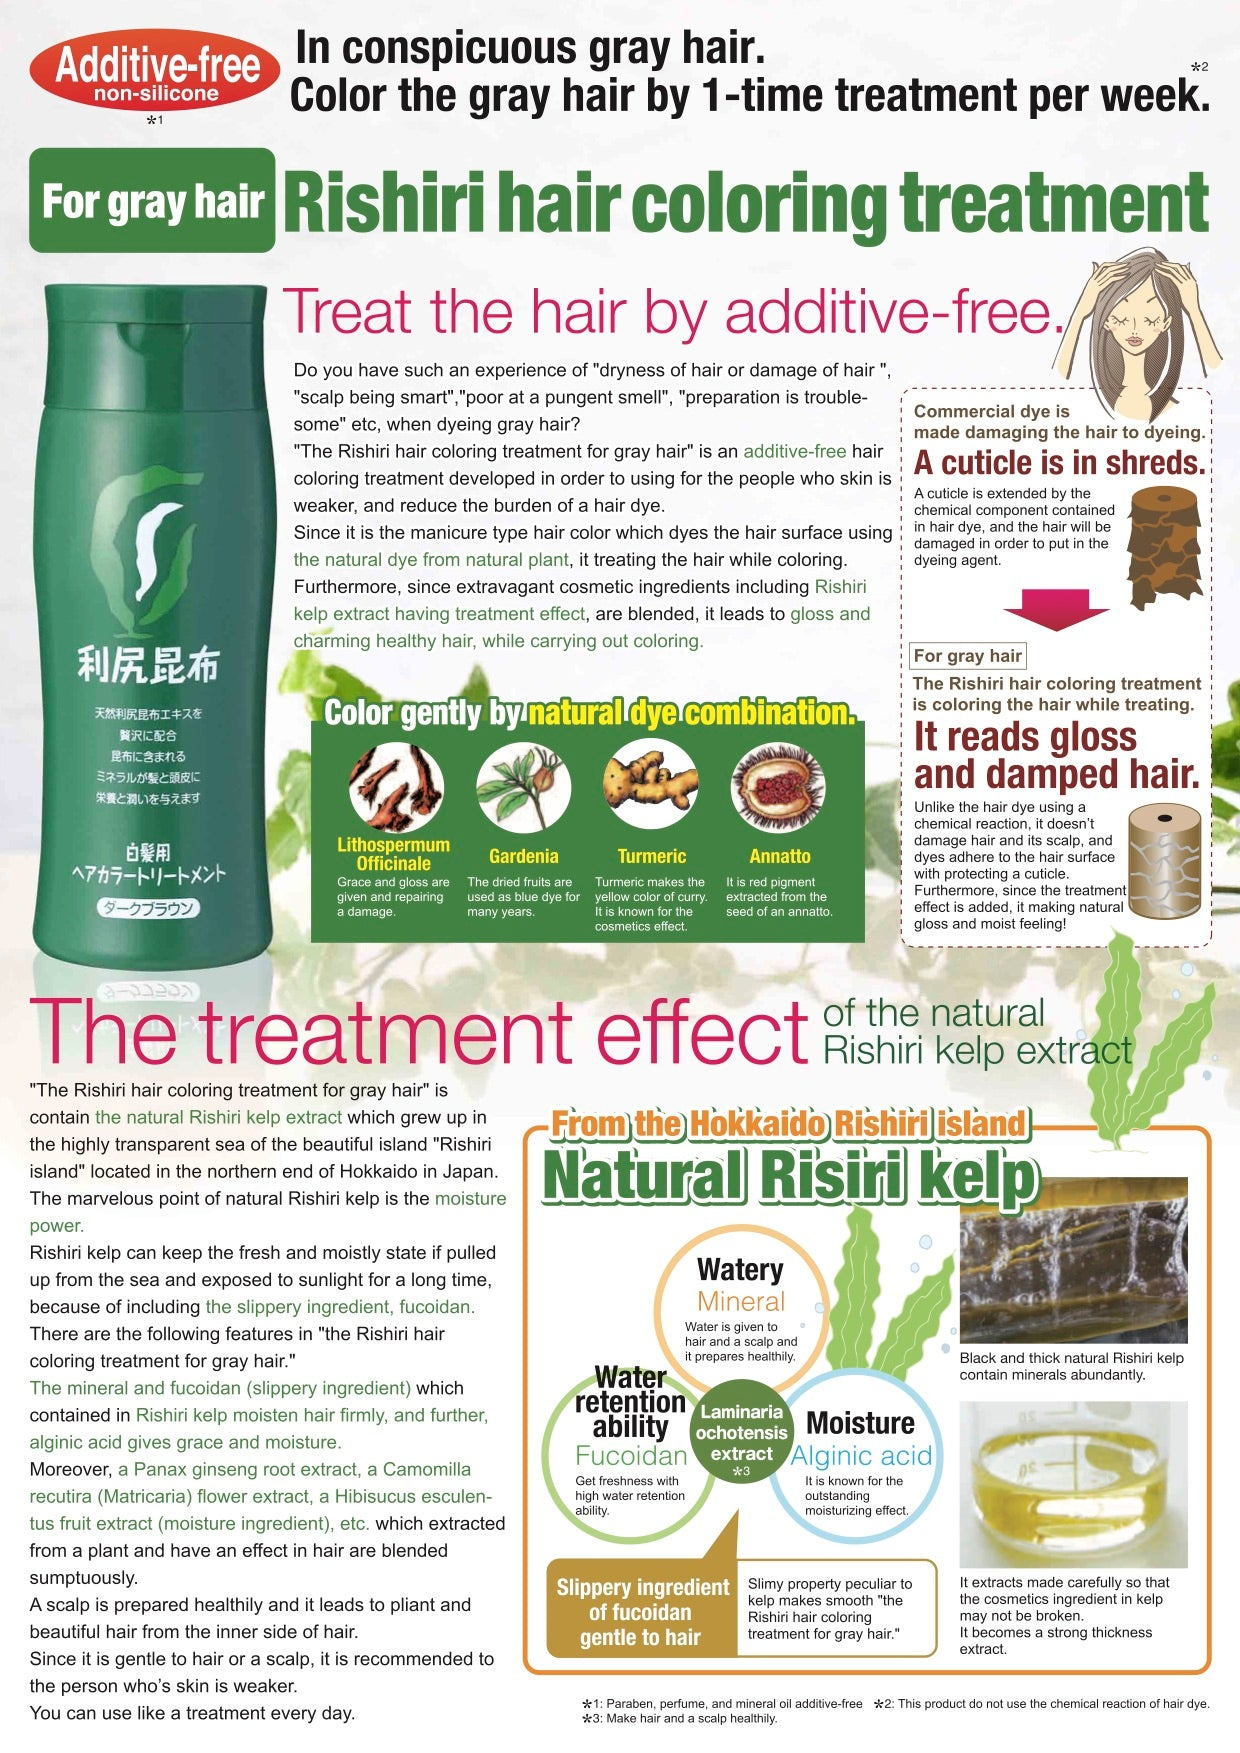 Exquisite Natural Hair Color Treatment Ways - The haircut community.